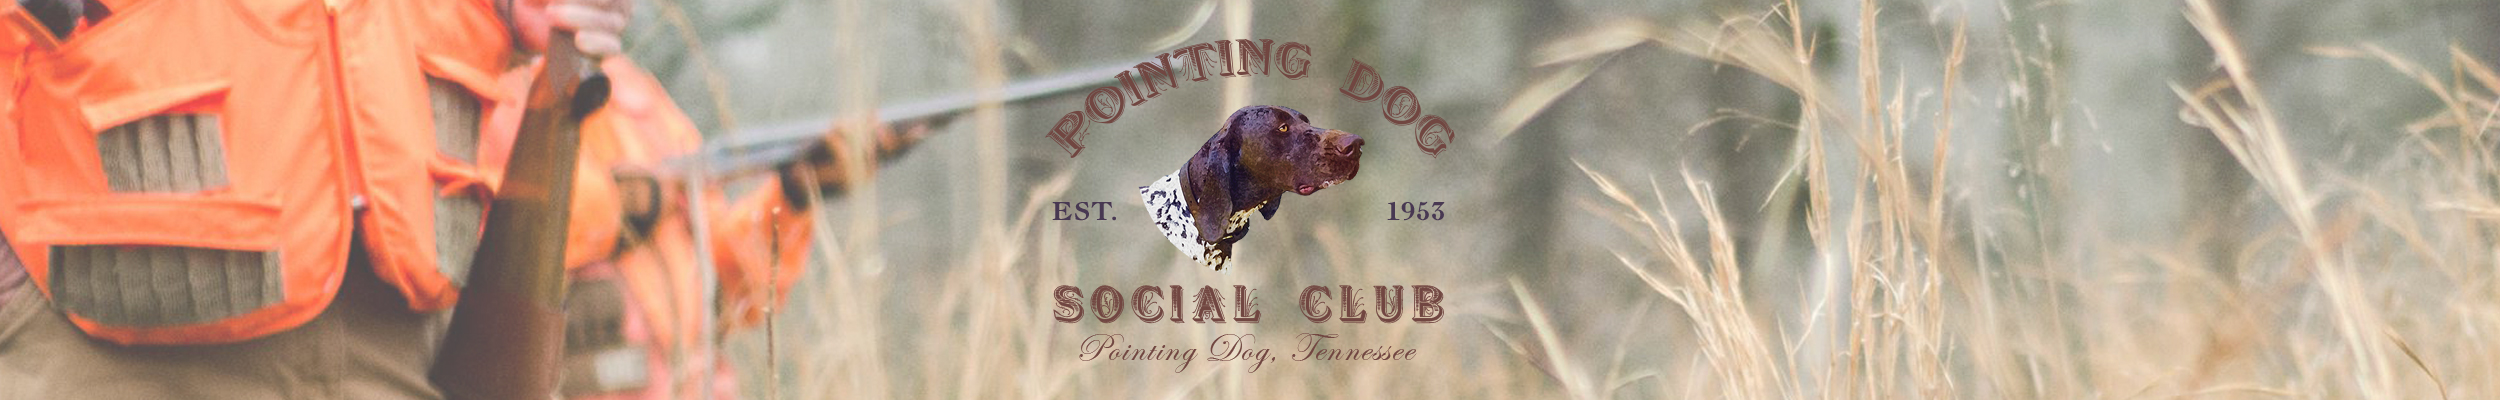 Pointing Dog Social Club